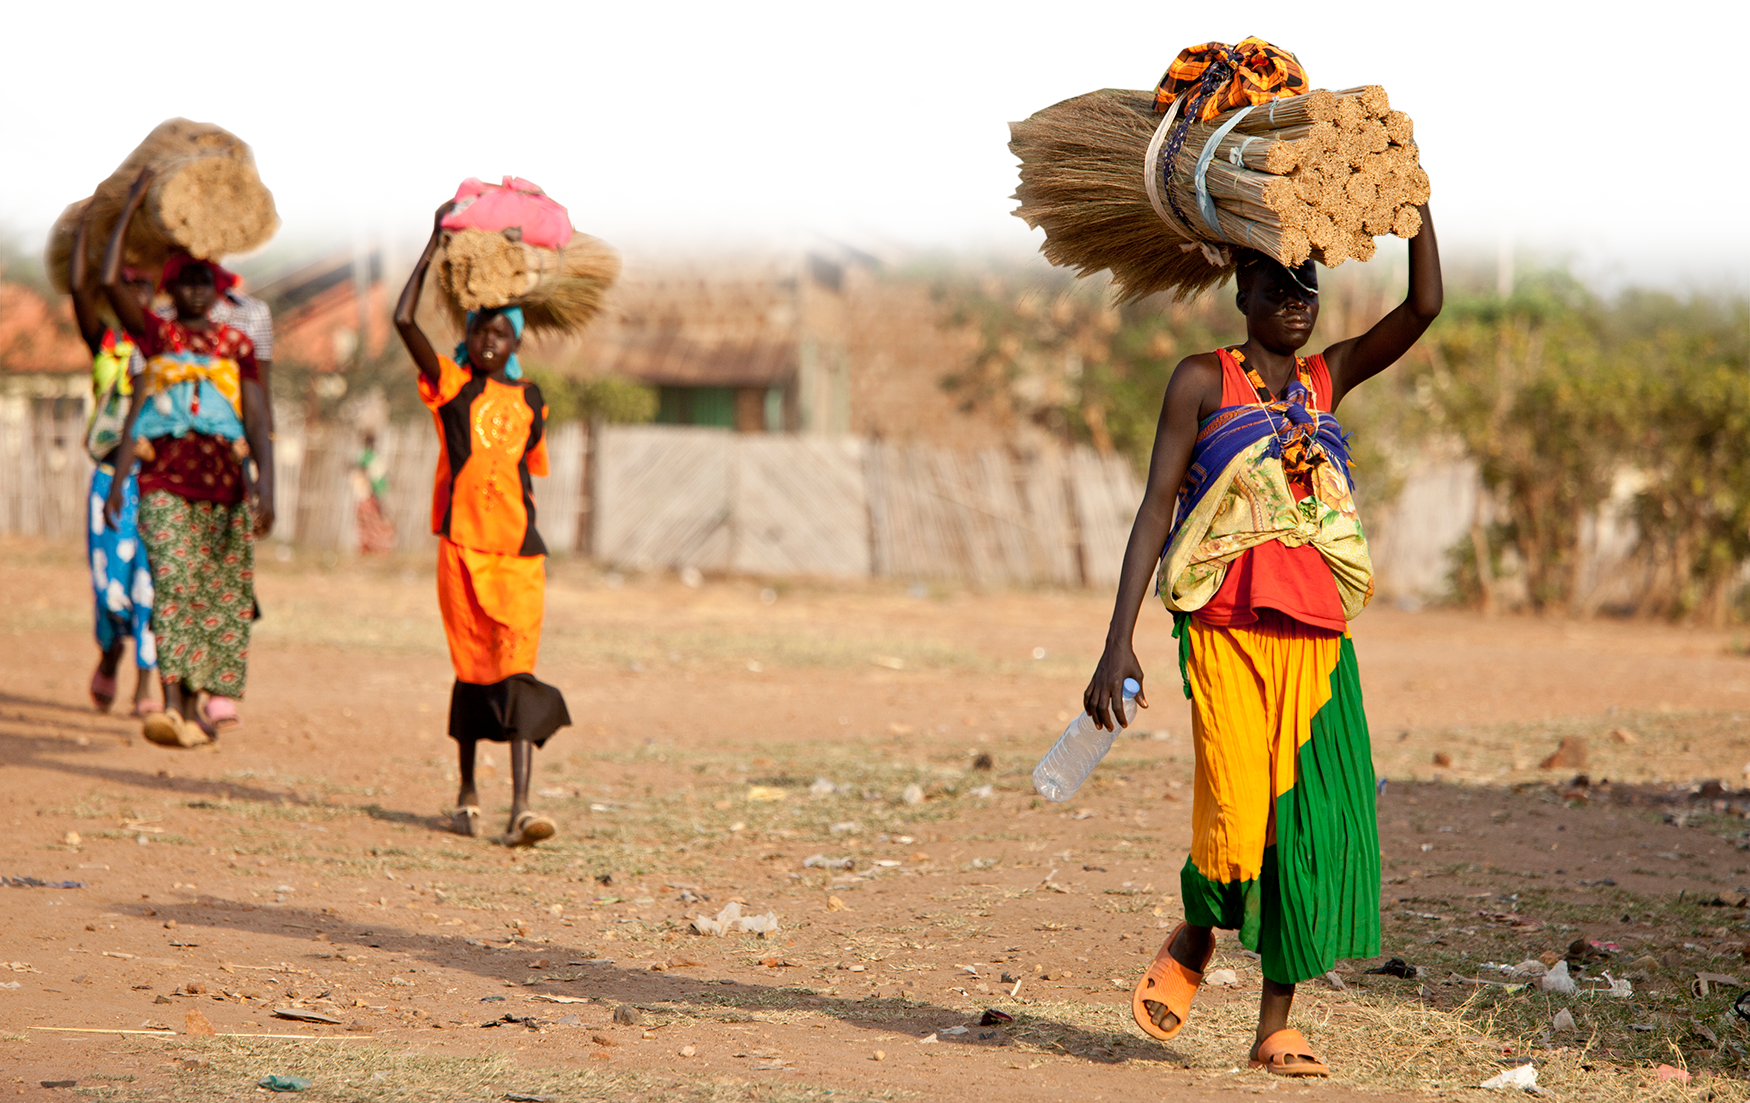 Women carry heavy loads on their heads in Torit, South Sudan (John Wollwerth/Shutterstock)